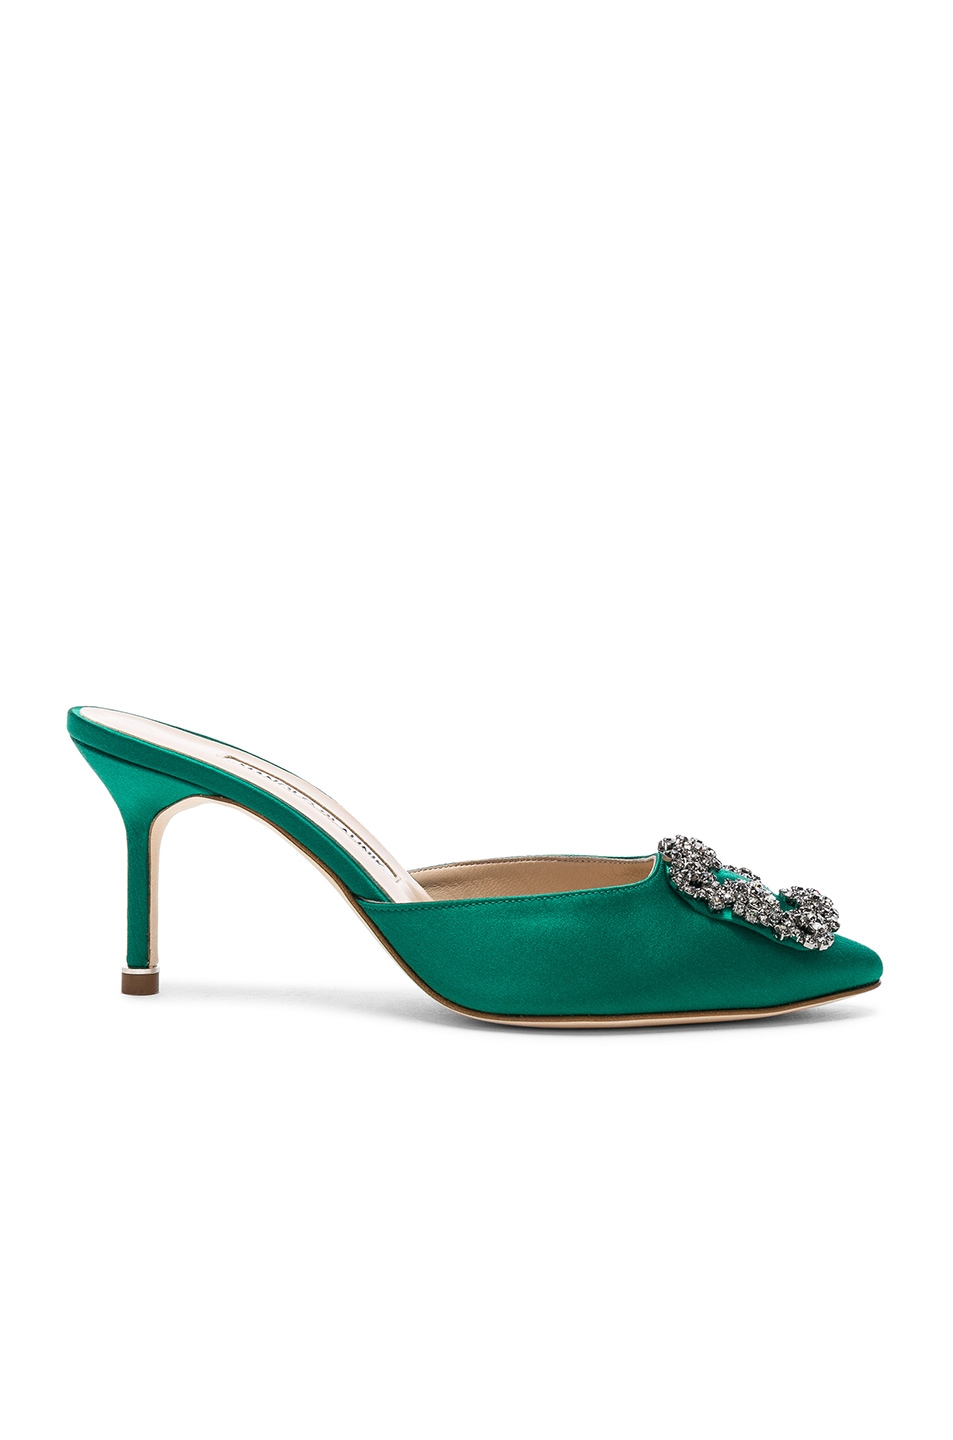 Image 1 of Manolo Blahnik Satin Hangisi 70 Mules in Green Satin